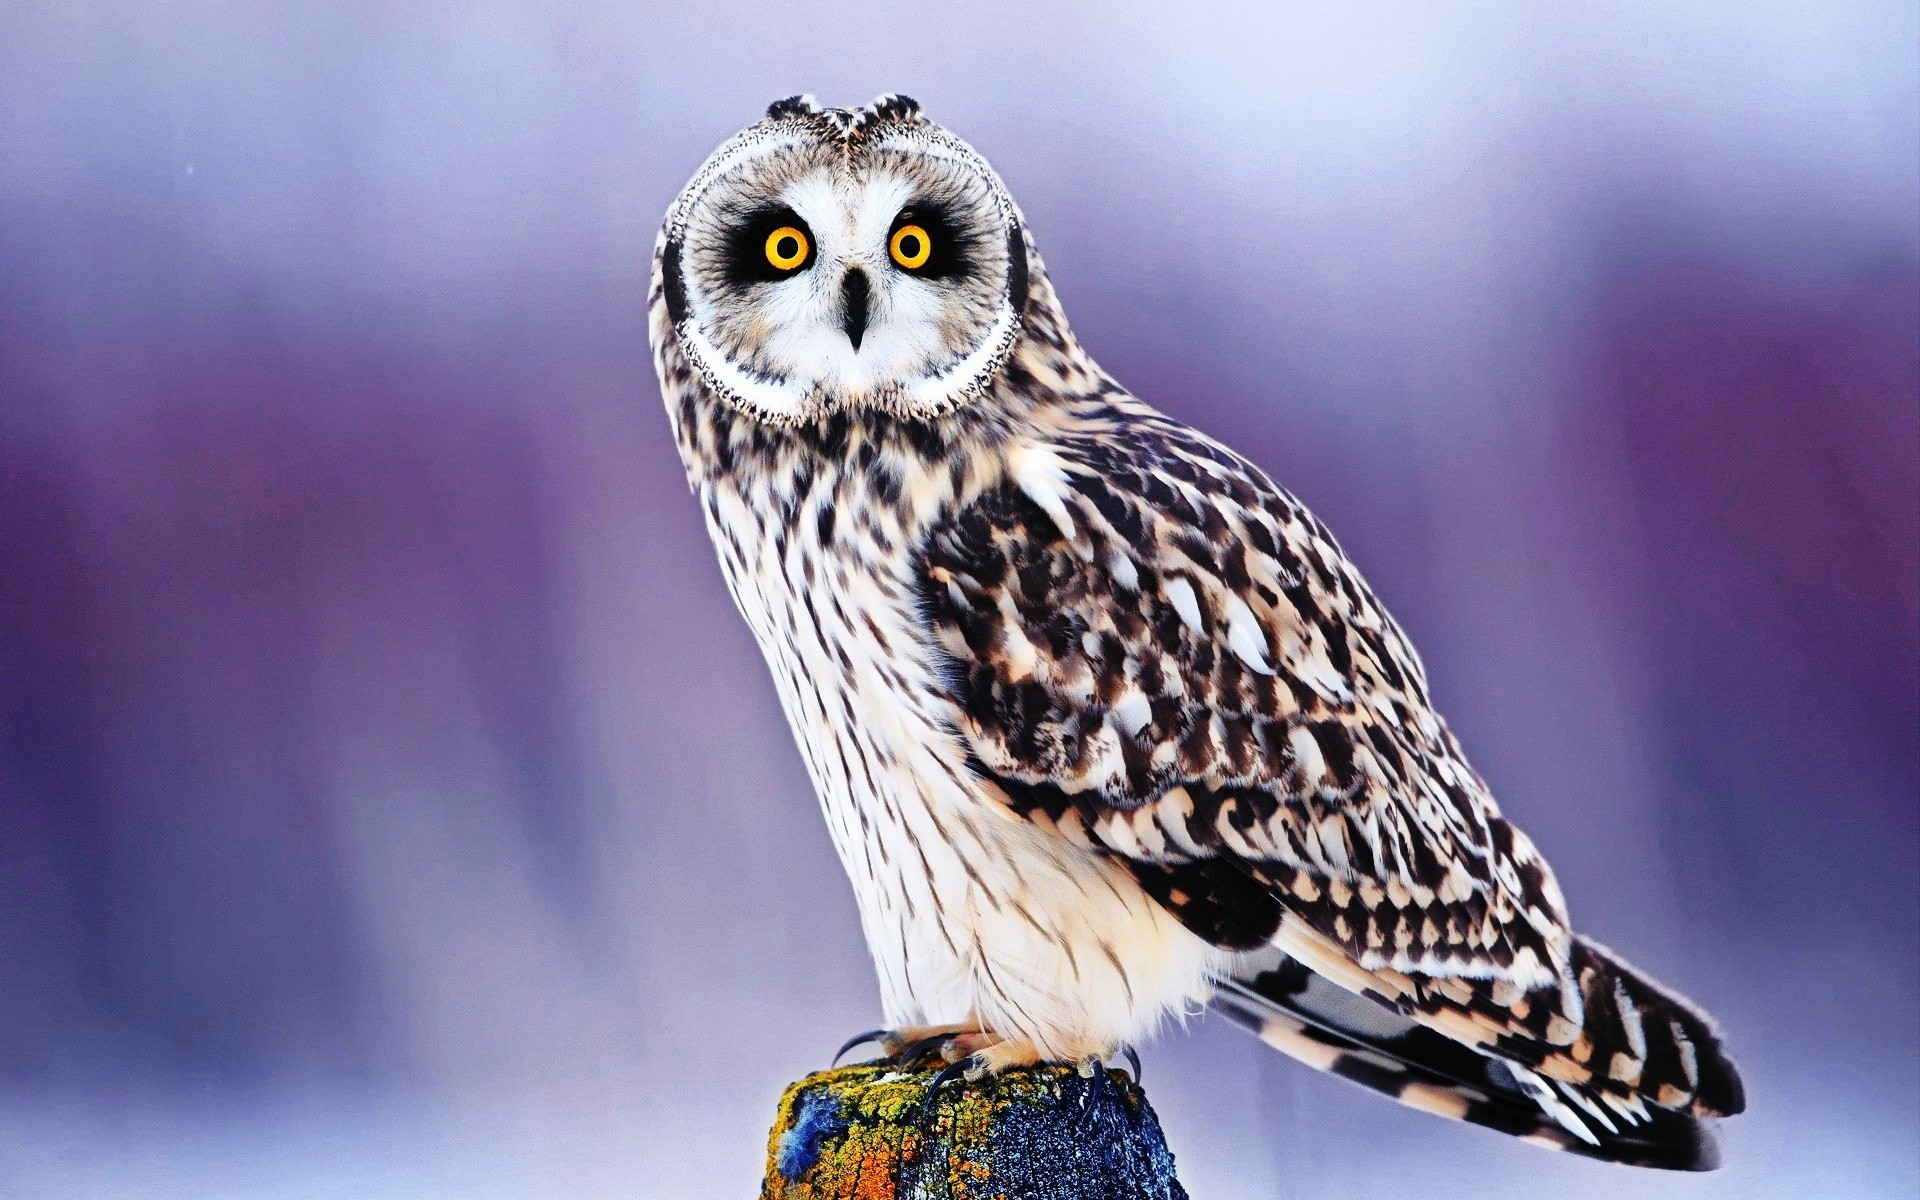 Res: 1920x1200, 1920x1080 Owl HD Wallpapers Earth Blog 1024×576 White Owl Wallpapers (42  Wallpapers) |